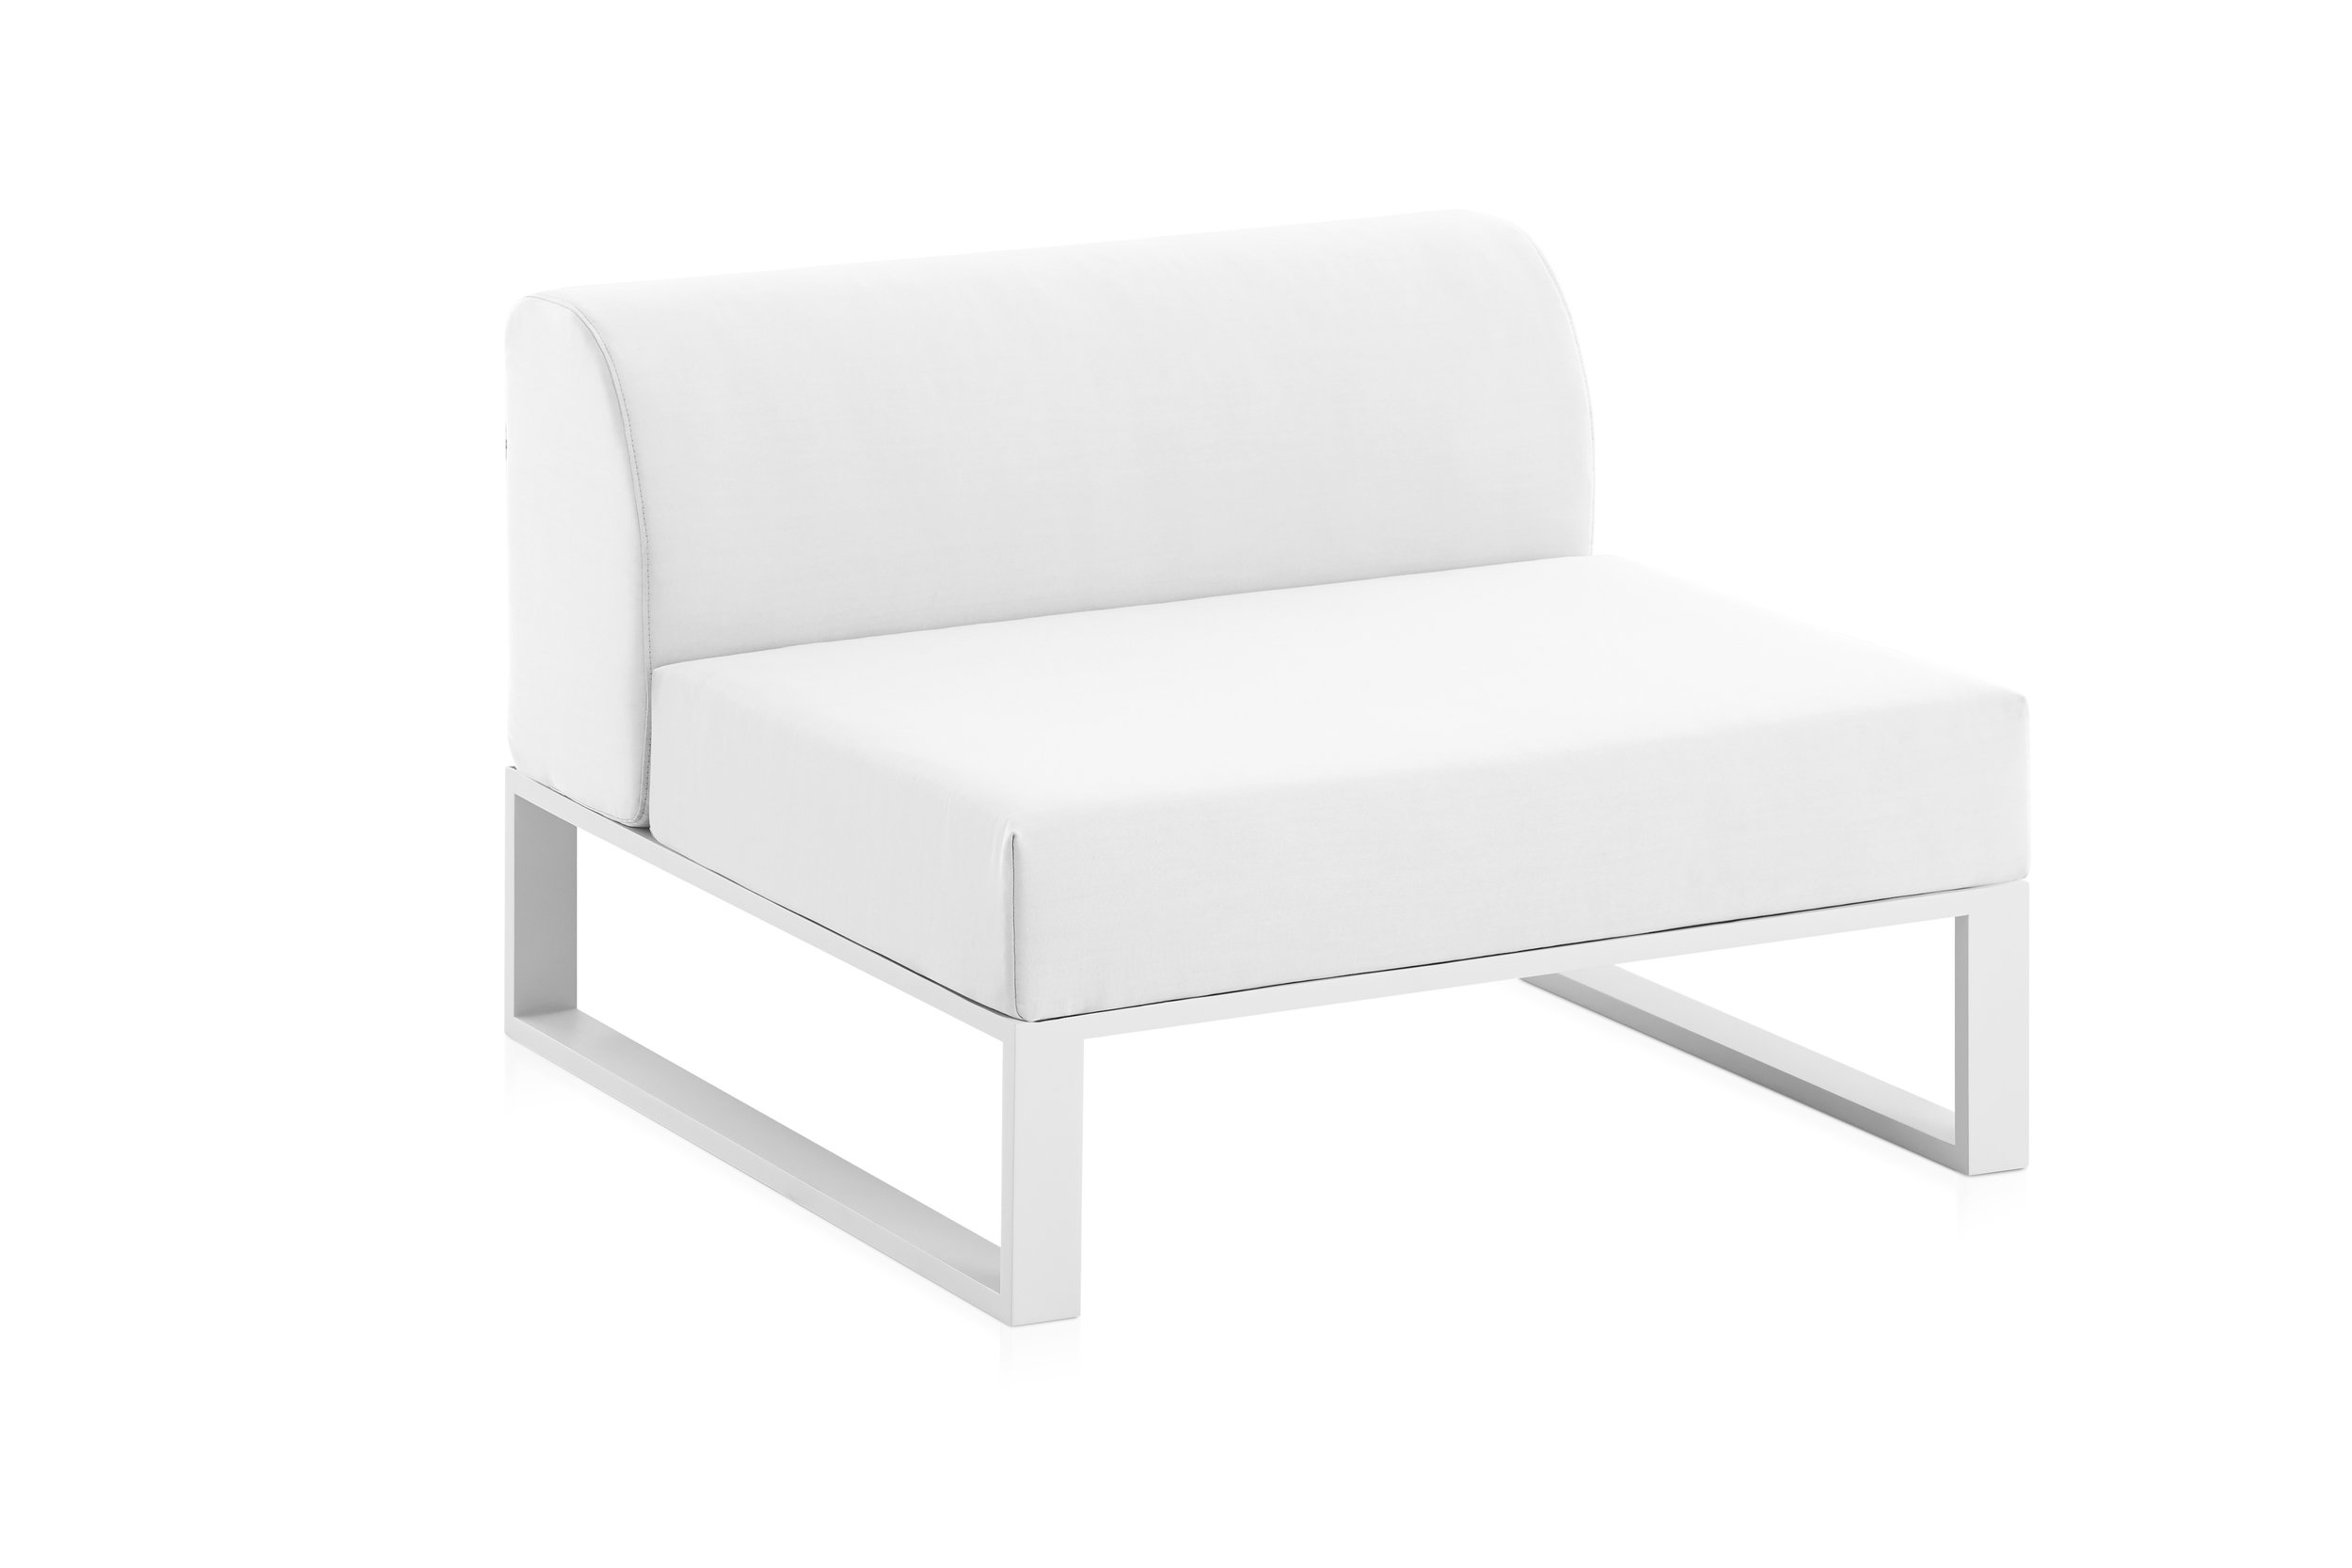 Ploid single sofa white.jpg